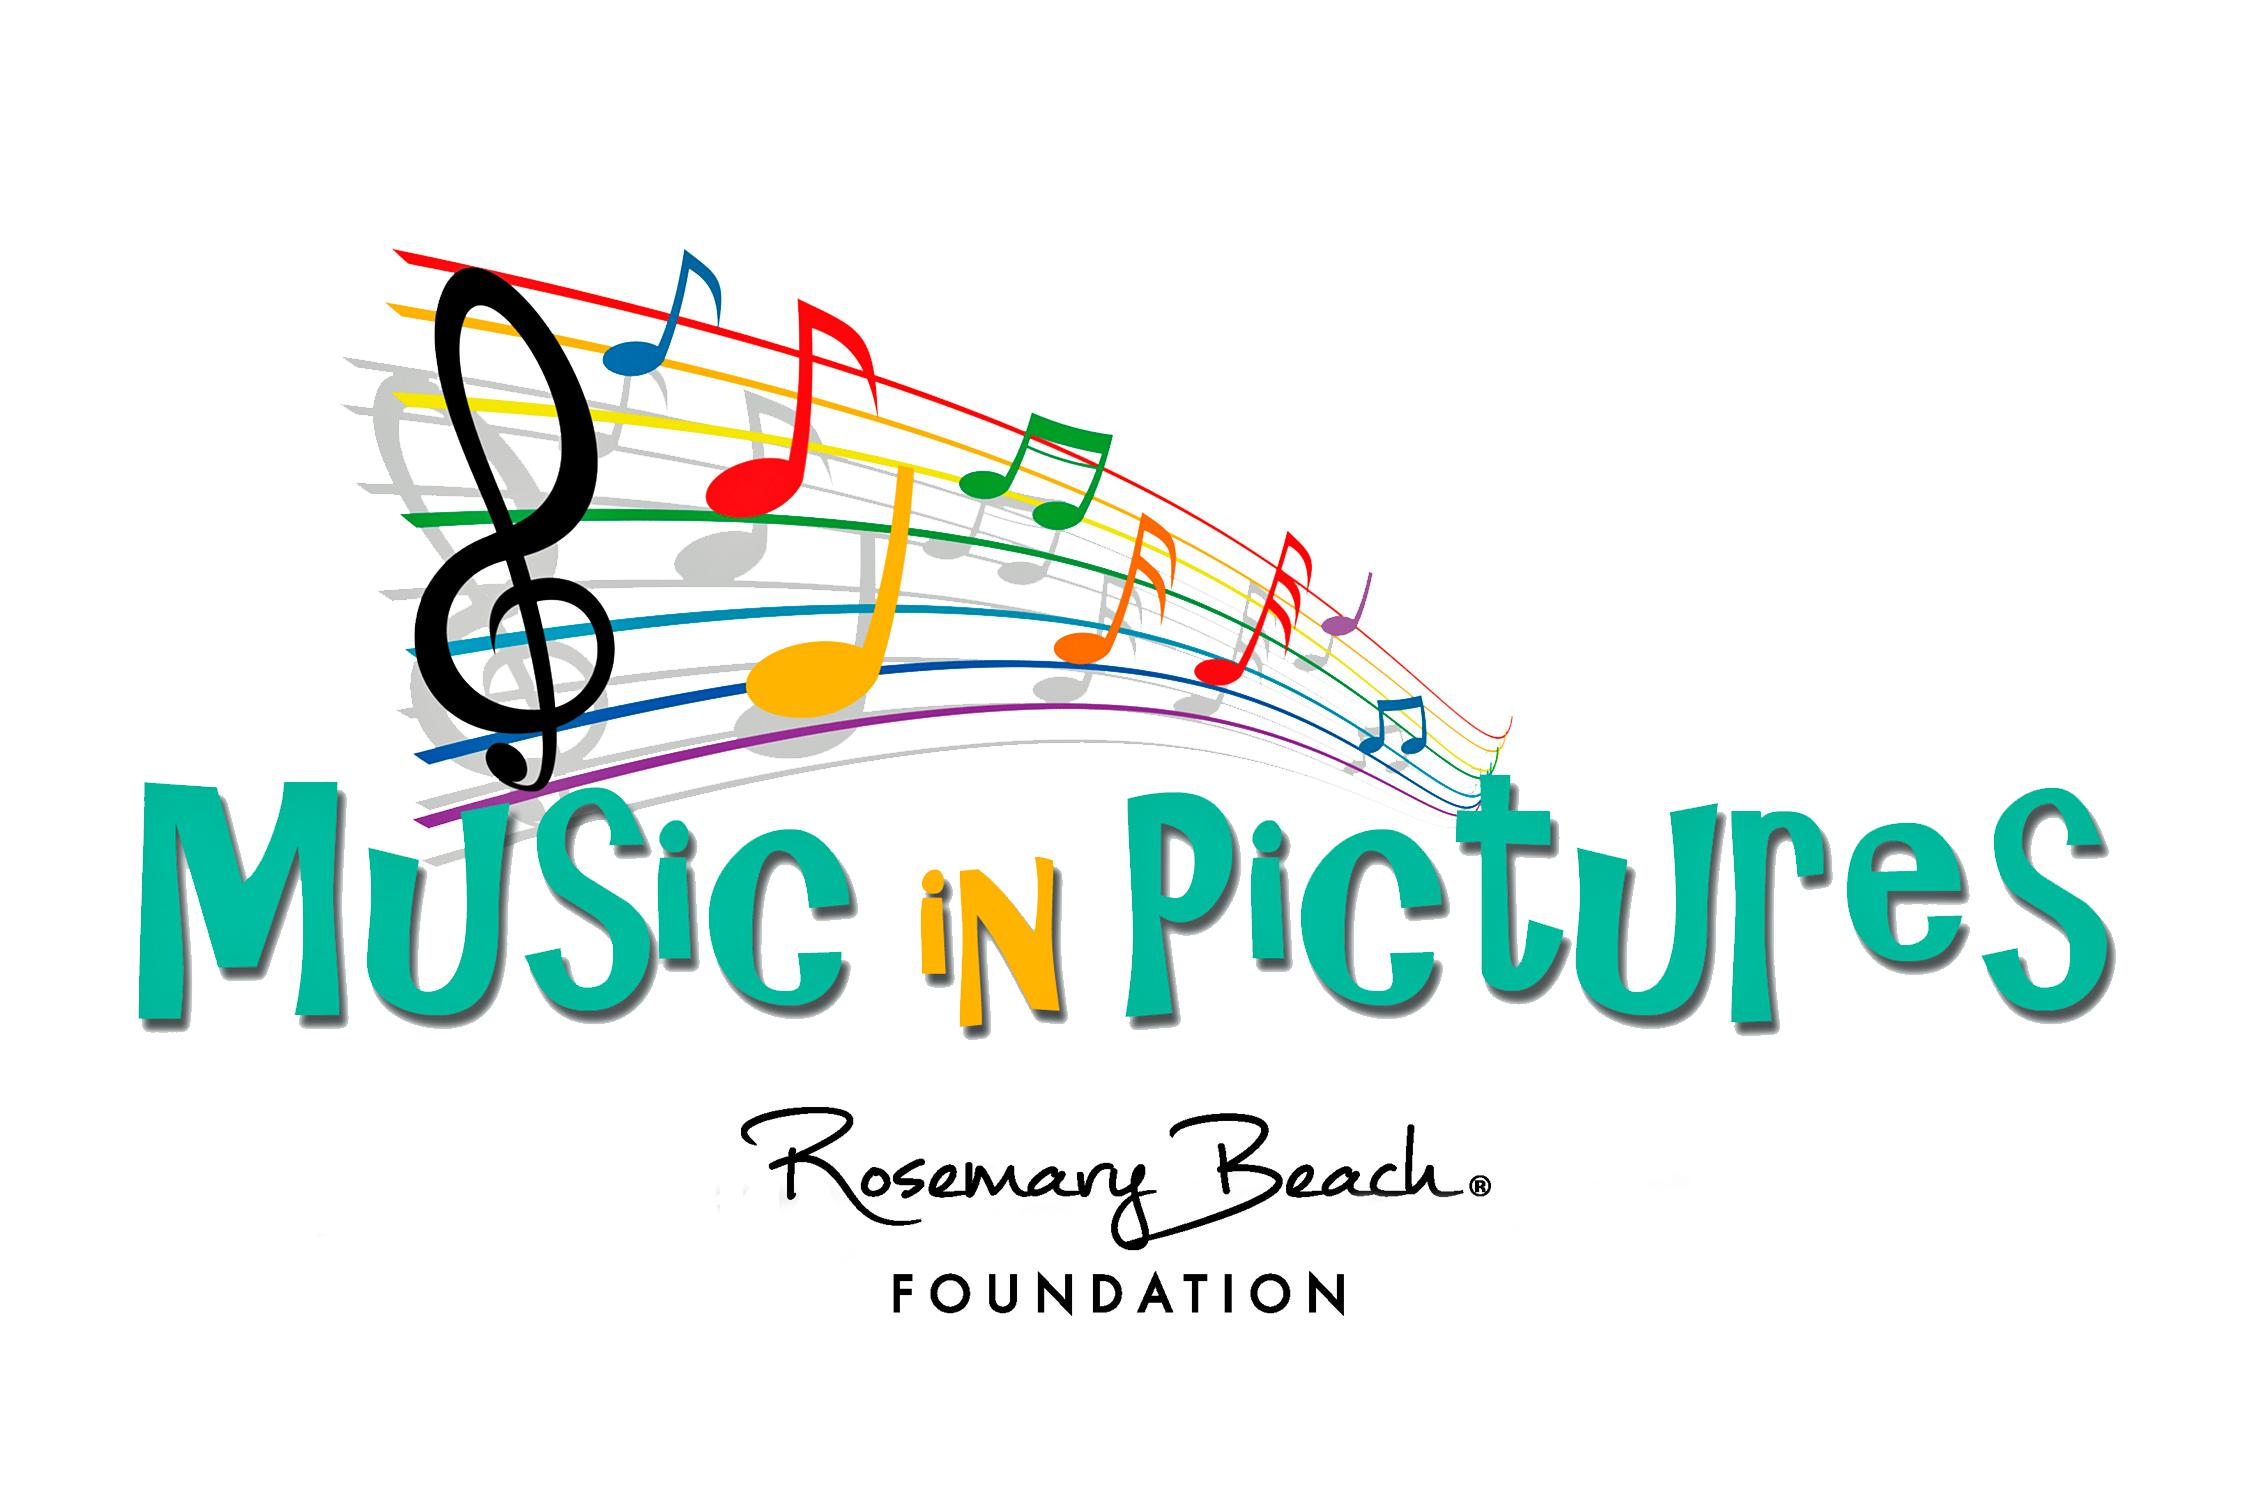 Music in Pictures